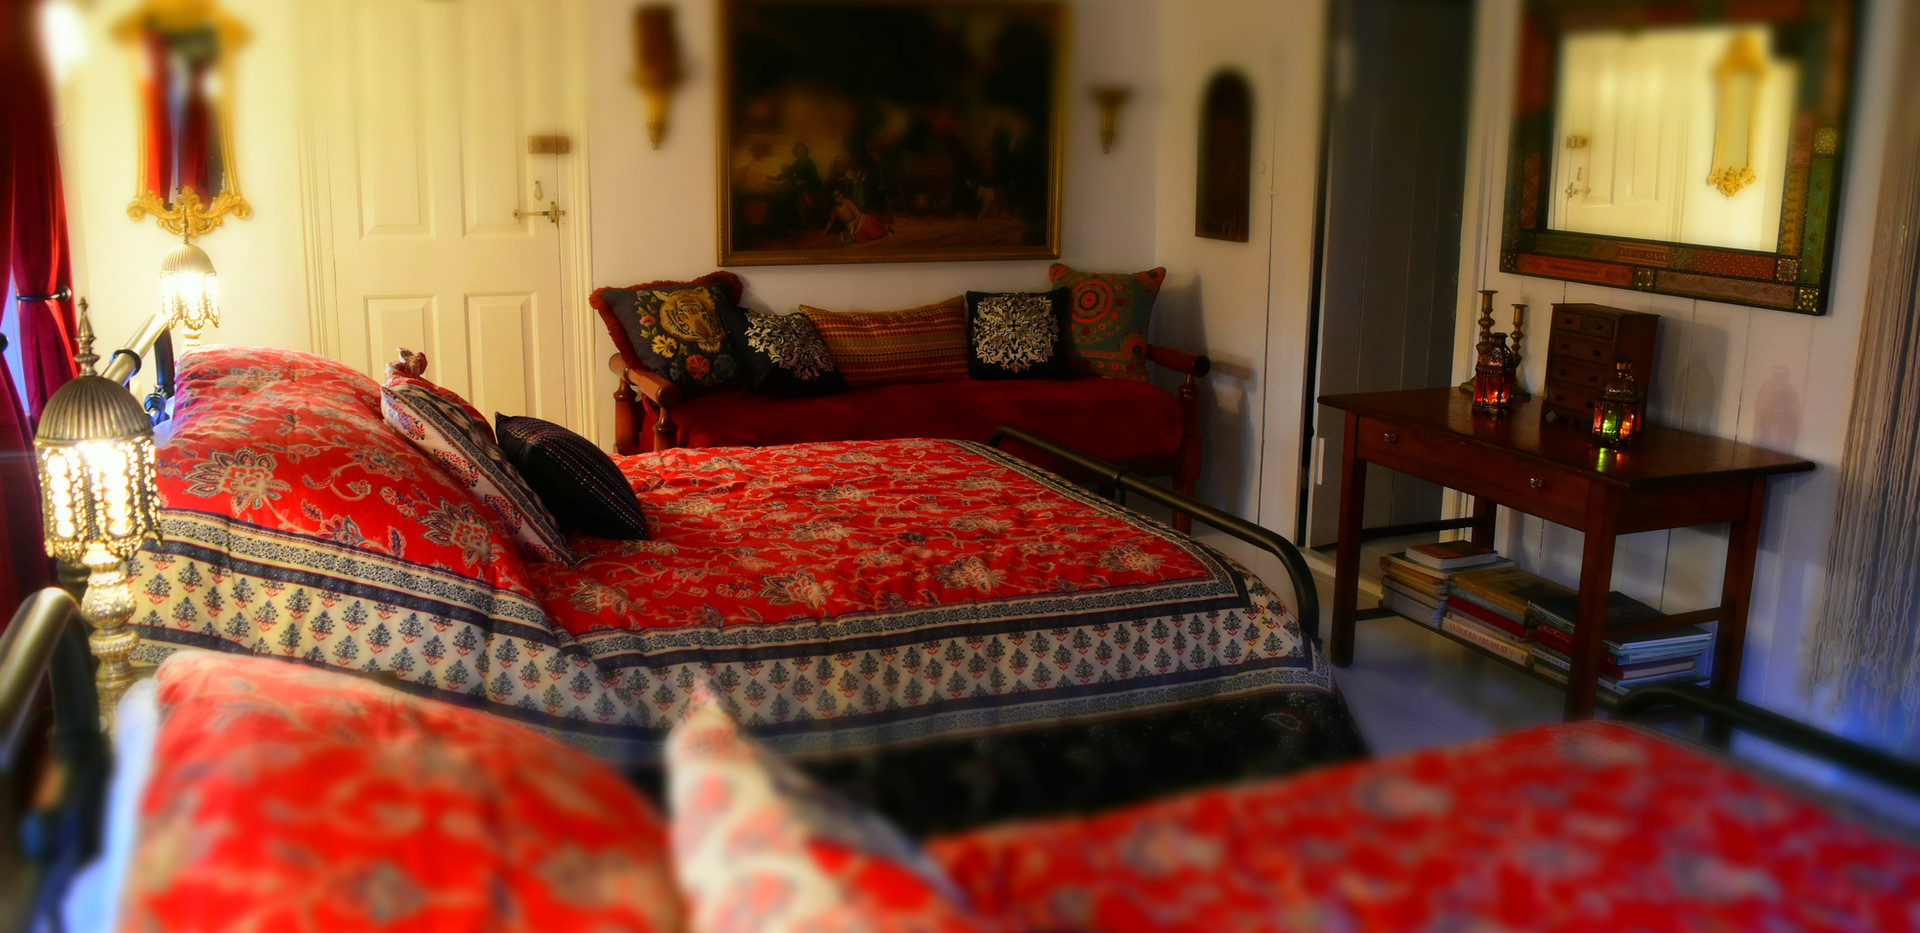 East India Room double beds.JPG